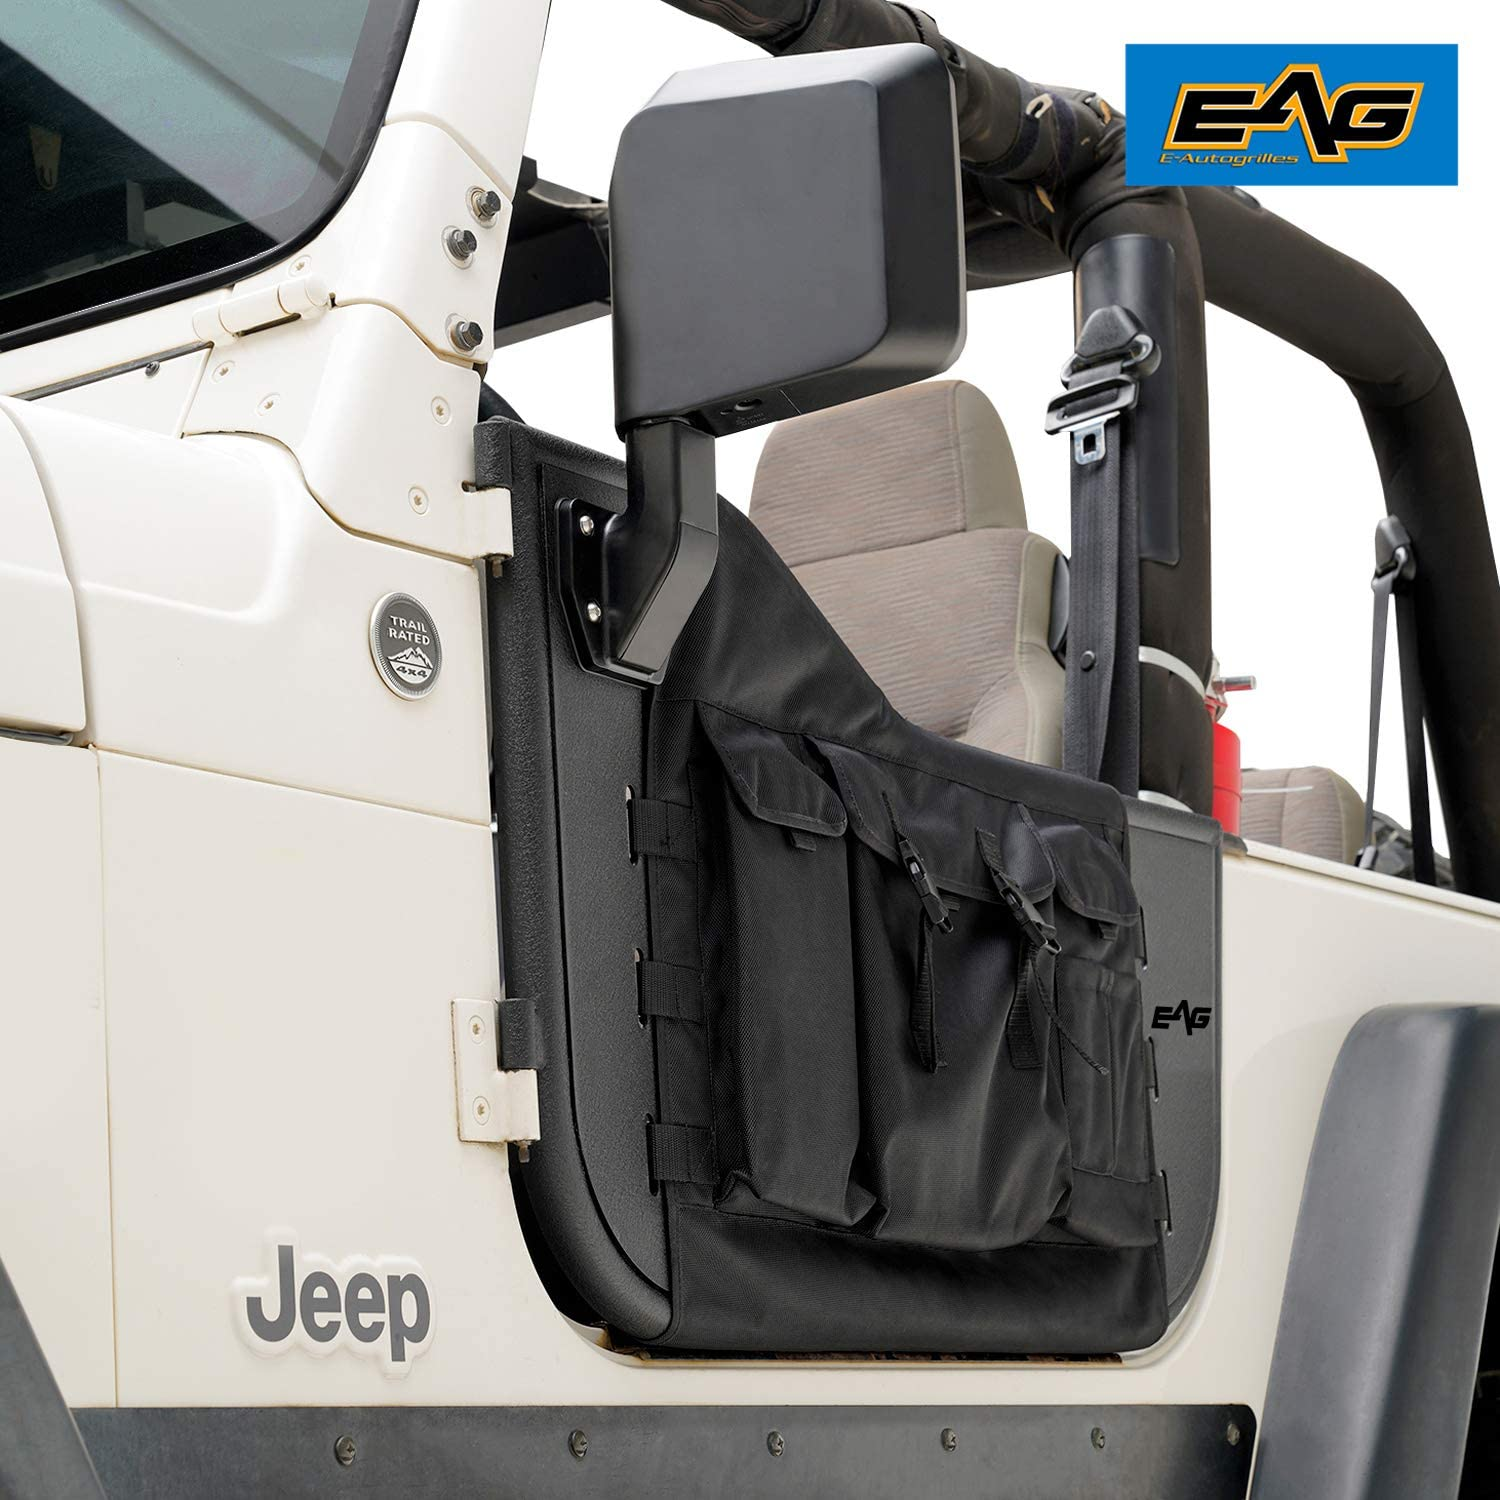 Amazon Com Eag Pocket Steel Tubular Door With Side View Mirror Fit For 97 06 Wrangler Tj Automotive